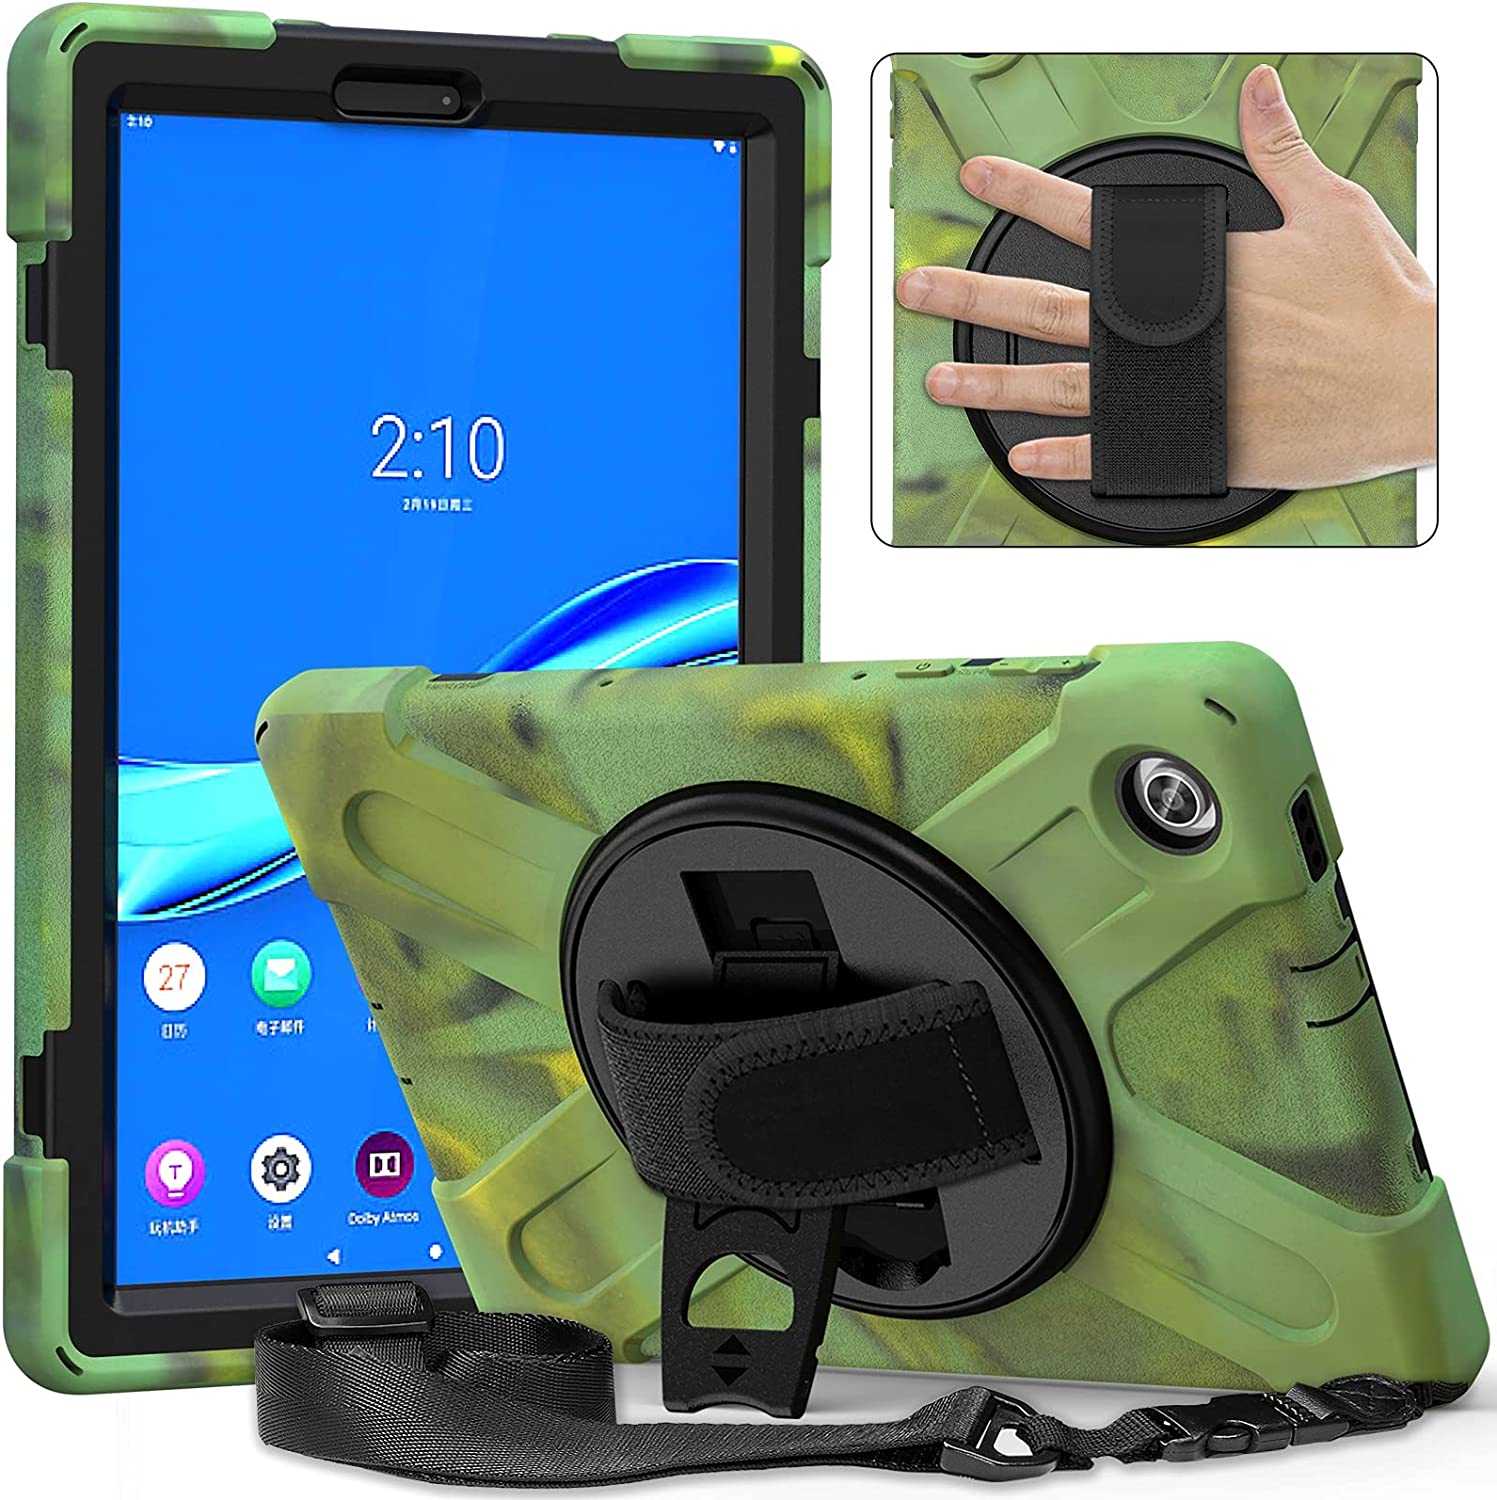 AHUOZ Nashville-Davidson Mall Tablet PC Case Bag Sleeves Lenovo Tab Cover Ranking TOP9 M10 for